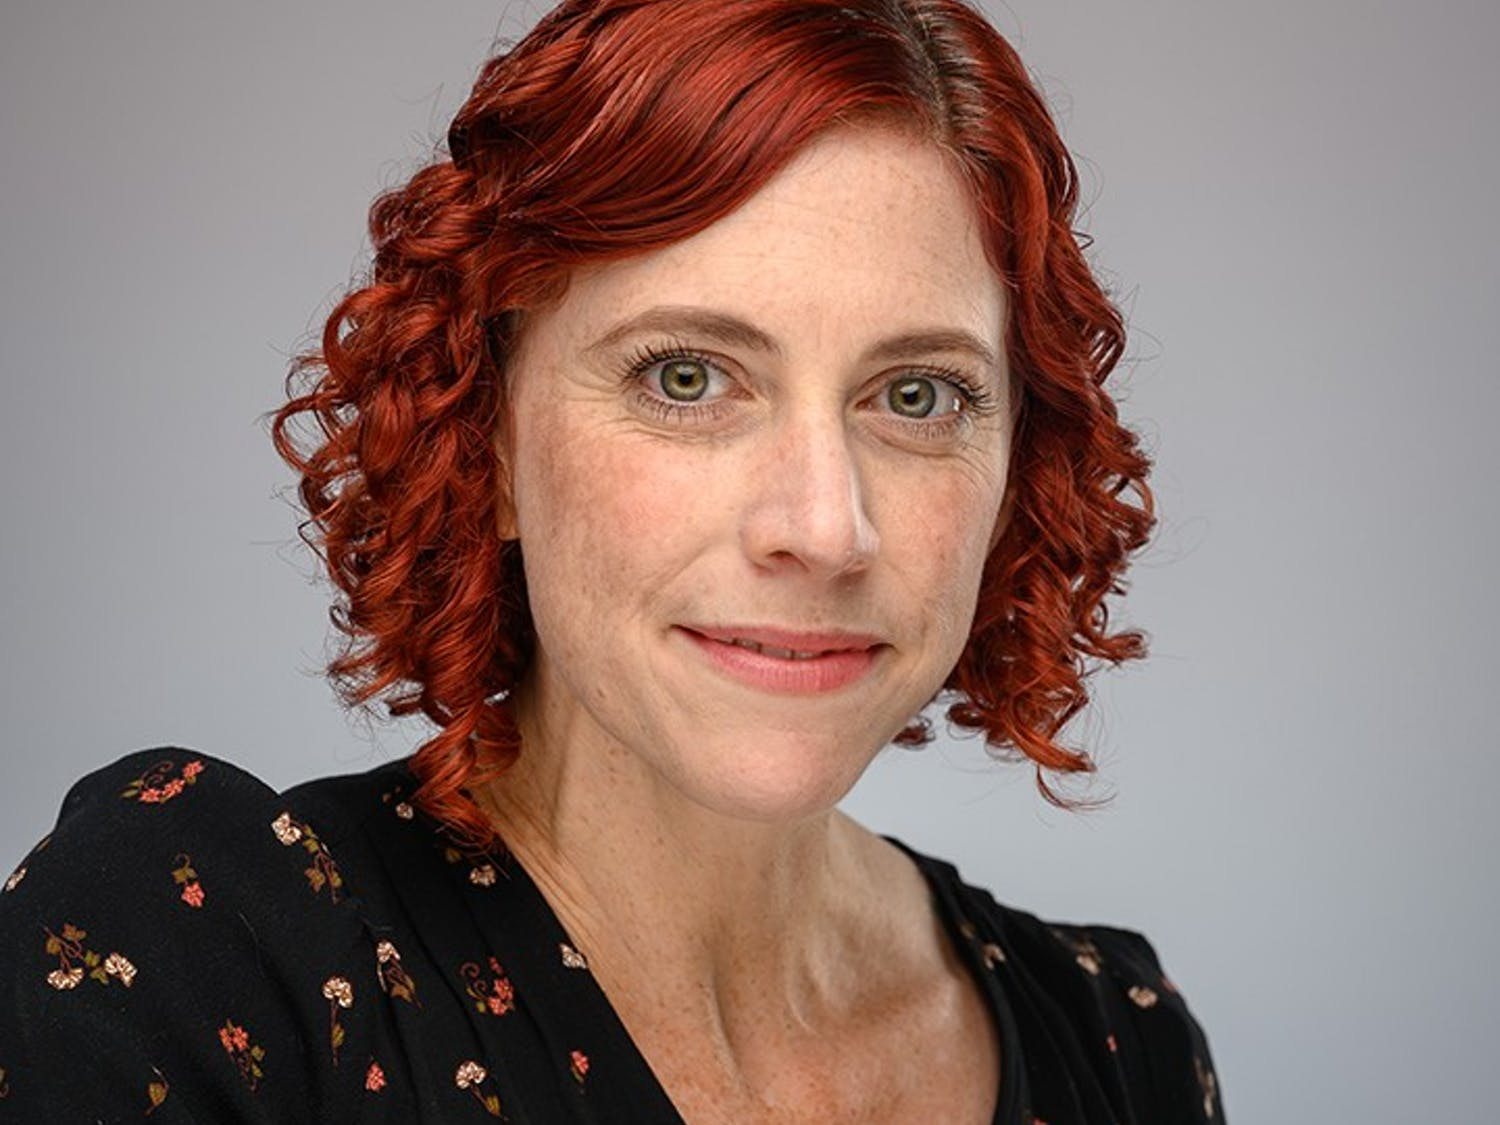 Sharon DeWitte poses for a headshot. DeWitte is a professor of anthropology at USC who researches diseases and their effects on society.